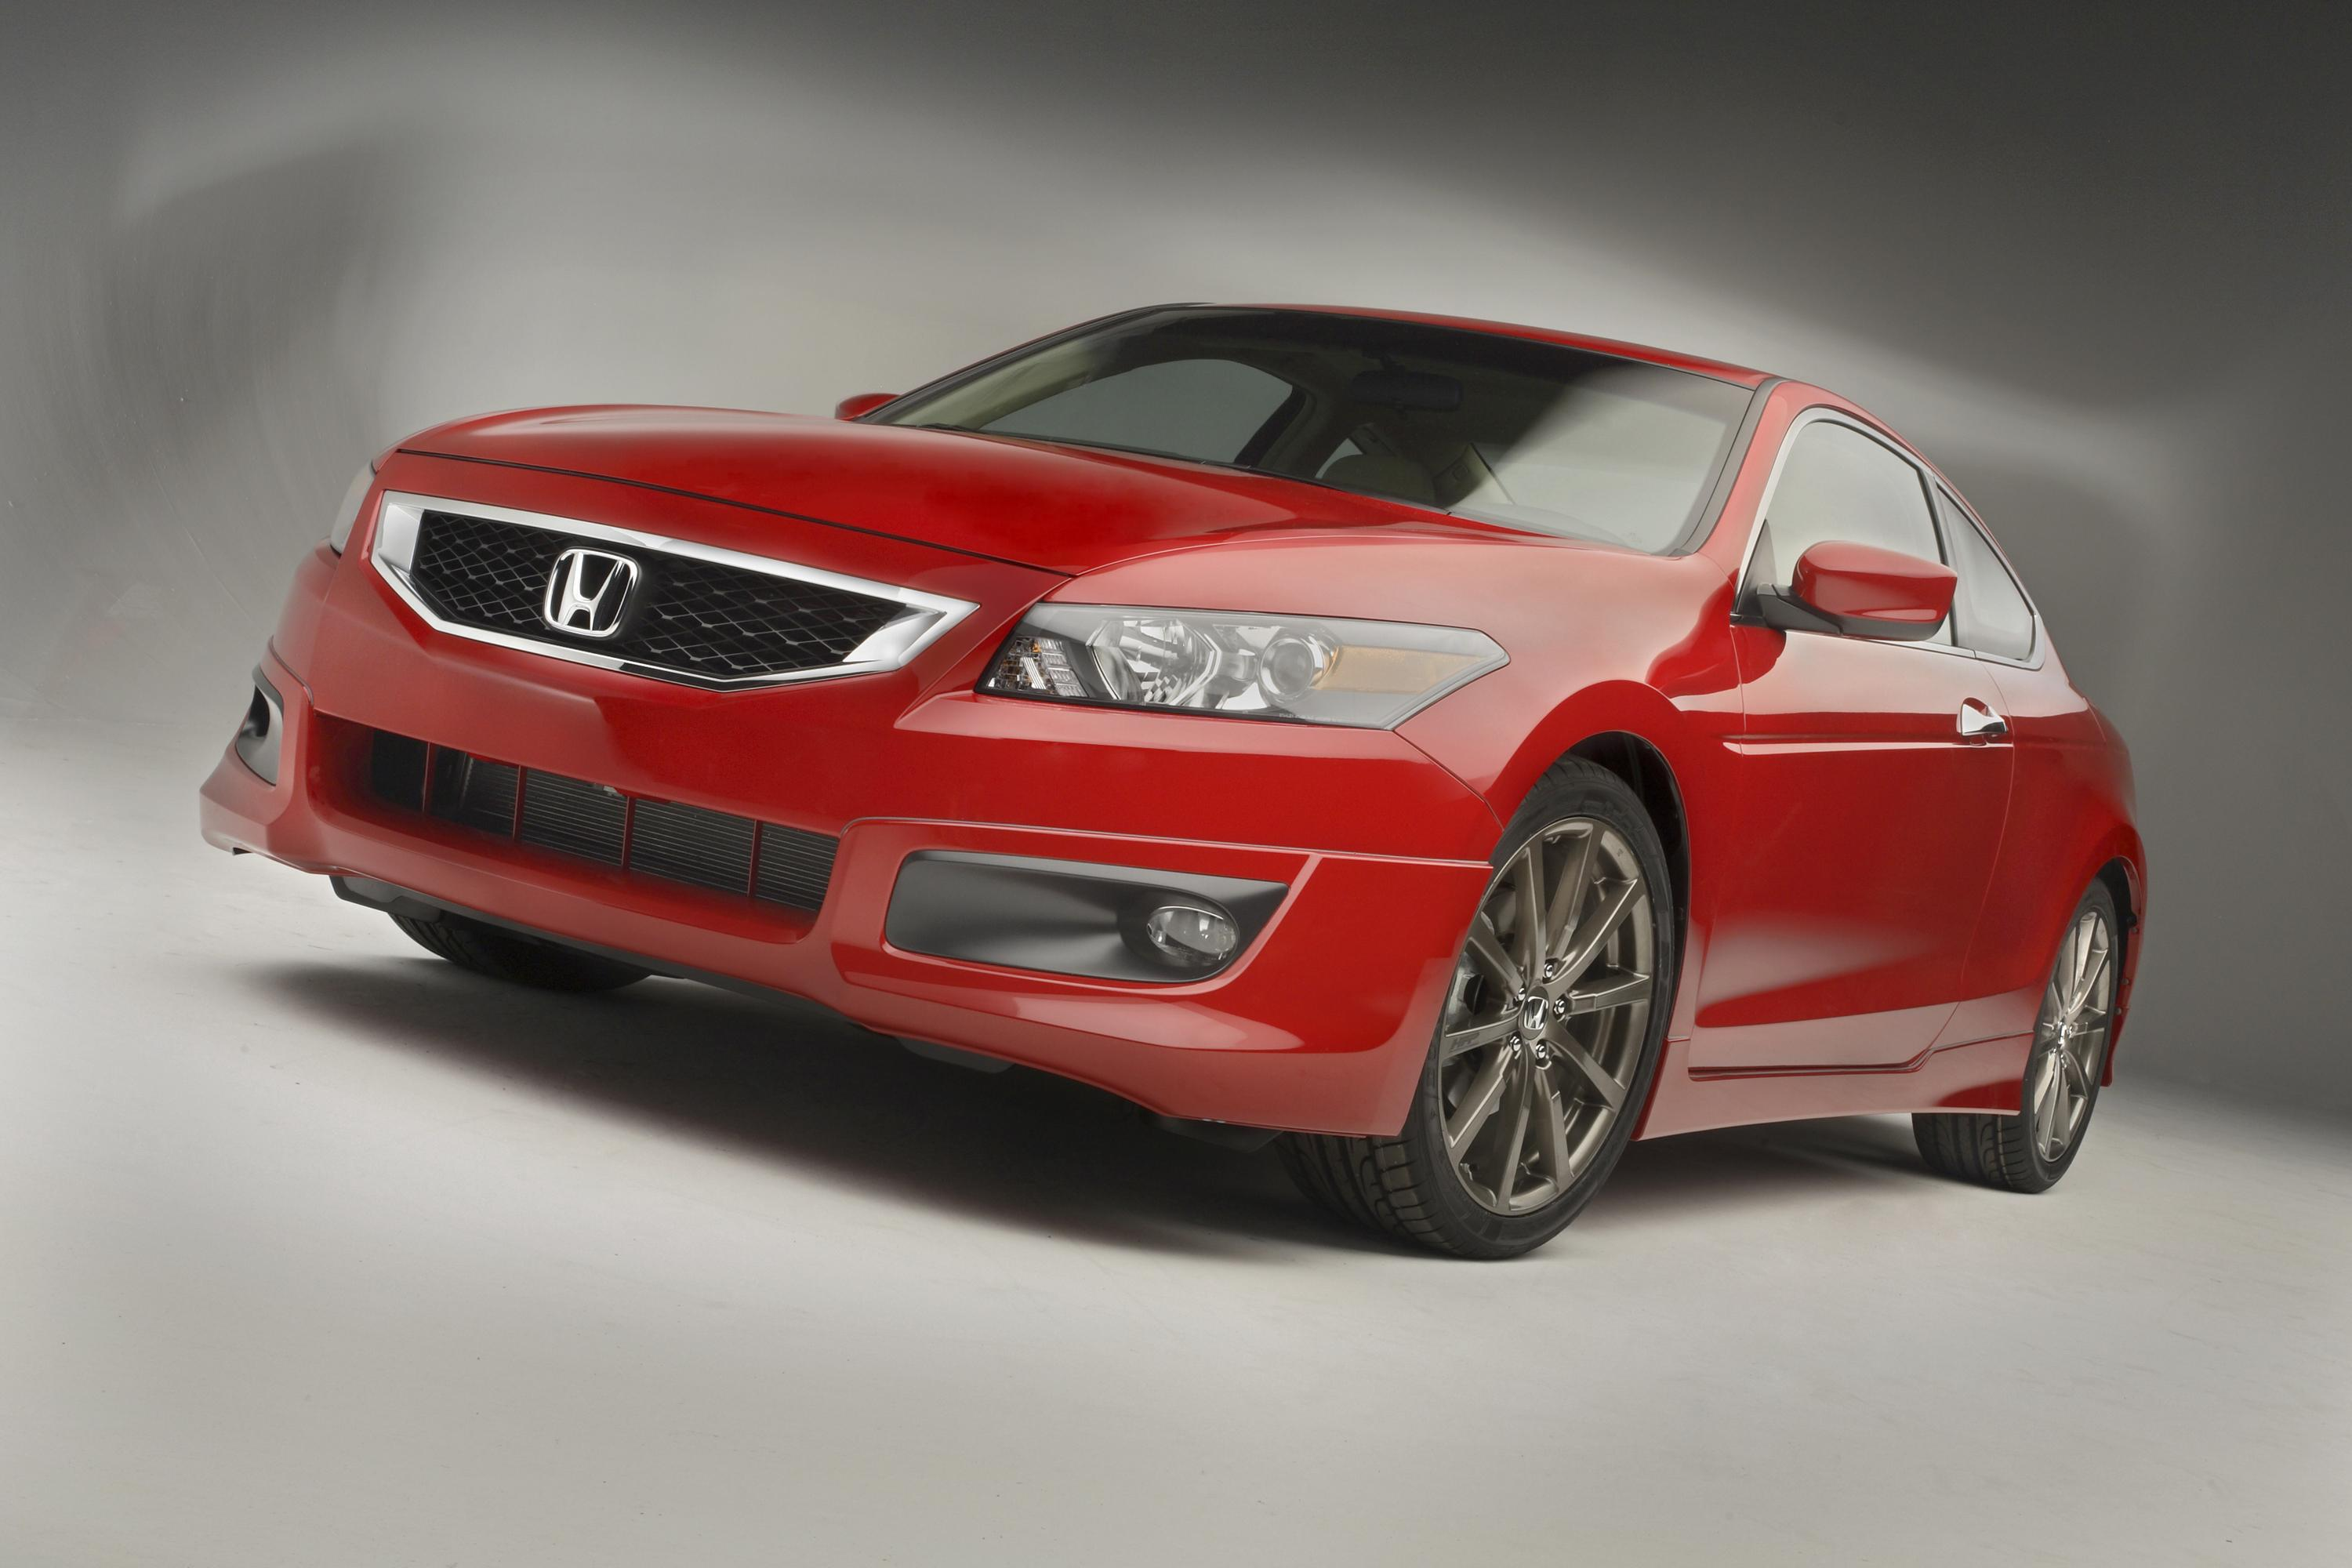 2007 Honda Accord Coupe HFP Concept | Top Speed